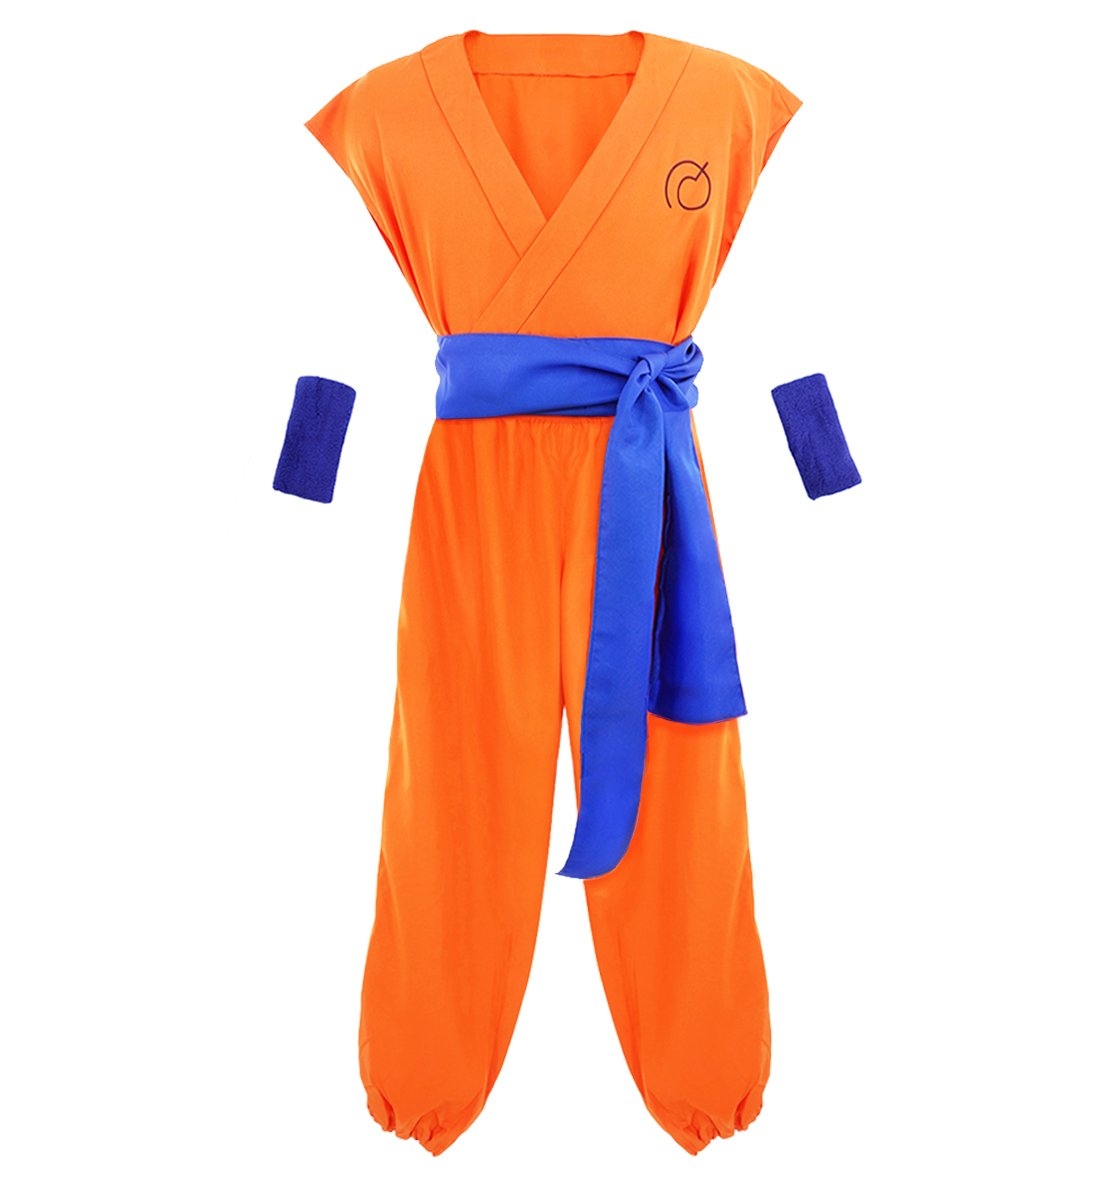 DAZCOS US Size Adult/Kids Yellow Son Goku Halloween Cosplay Costume (Child M)